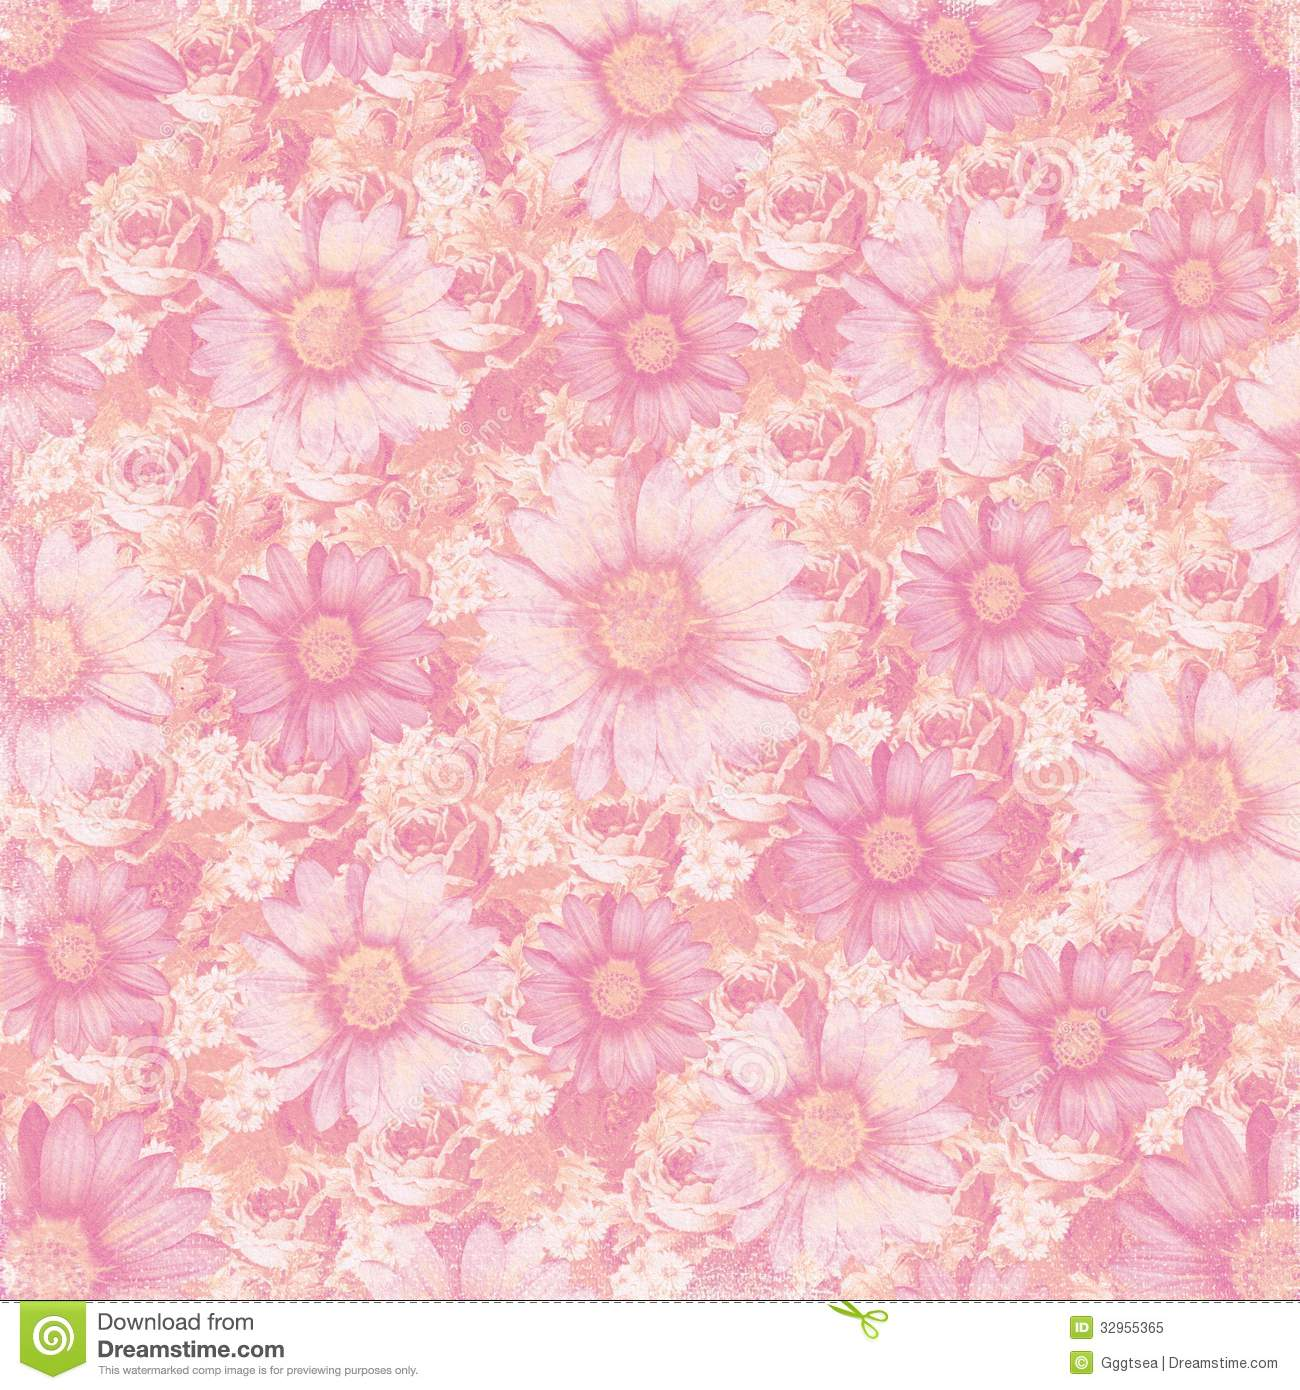 Antique Vintage Flowers Background Royalty Free Stock Photo - Image ... Flower Vine Clipart